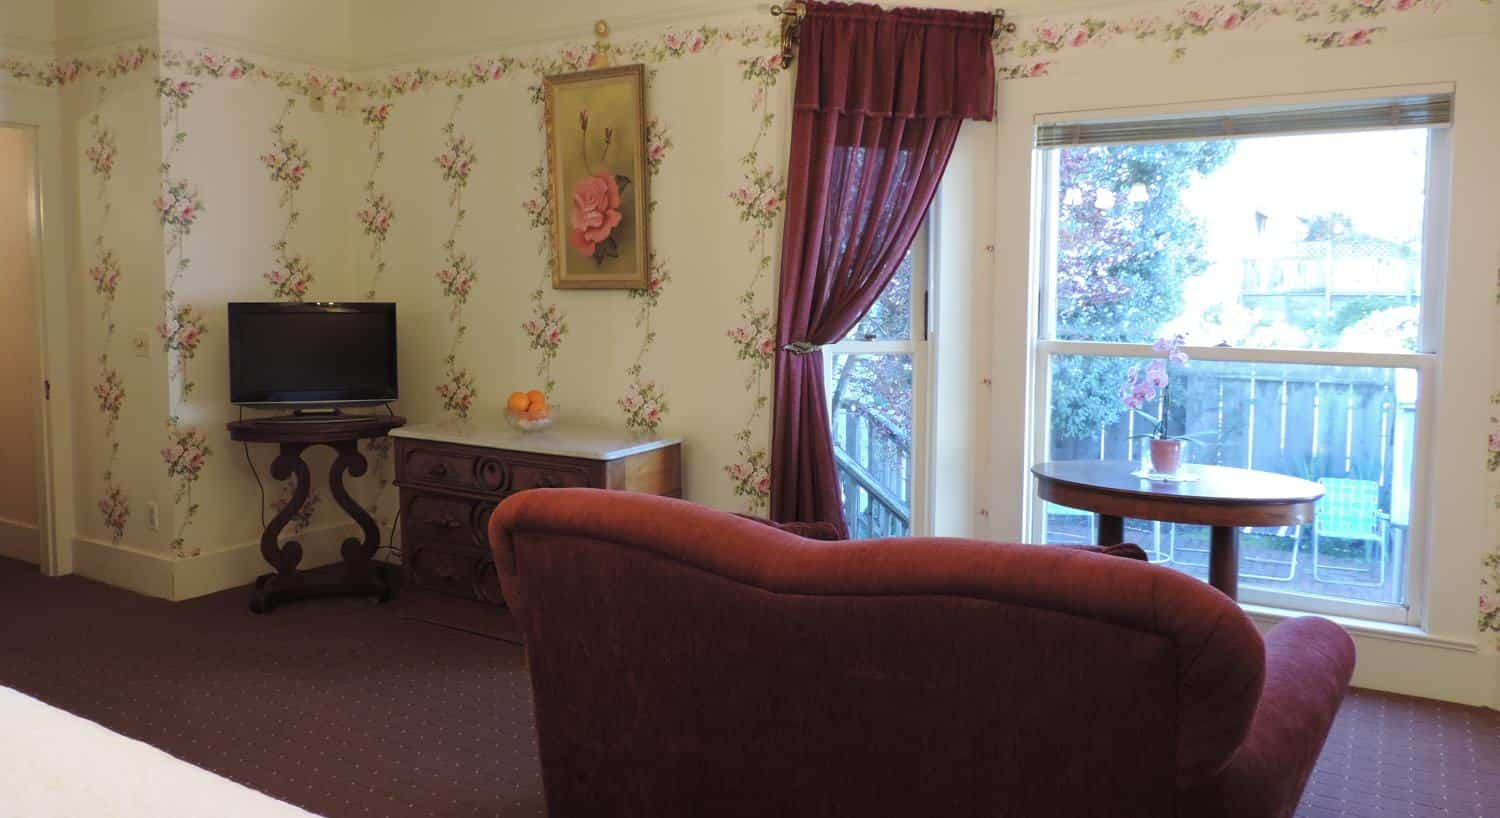 Guest room with ivory floral papered walls, large window, upholstered chair, several tables and a TV